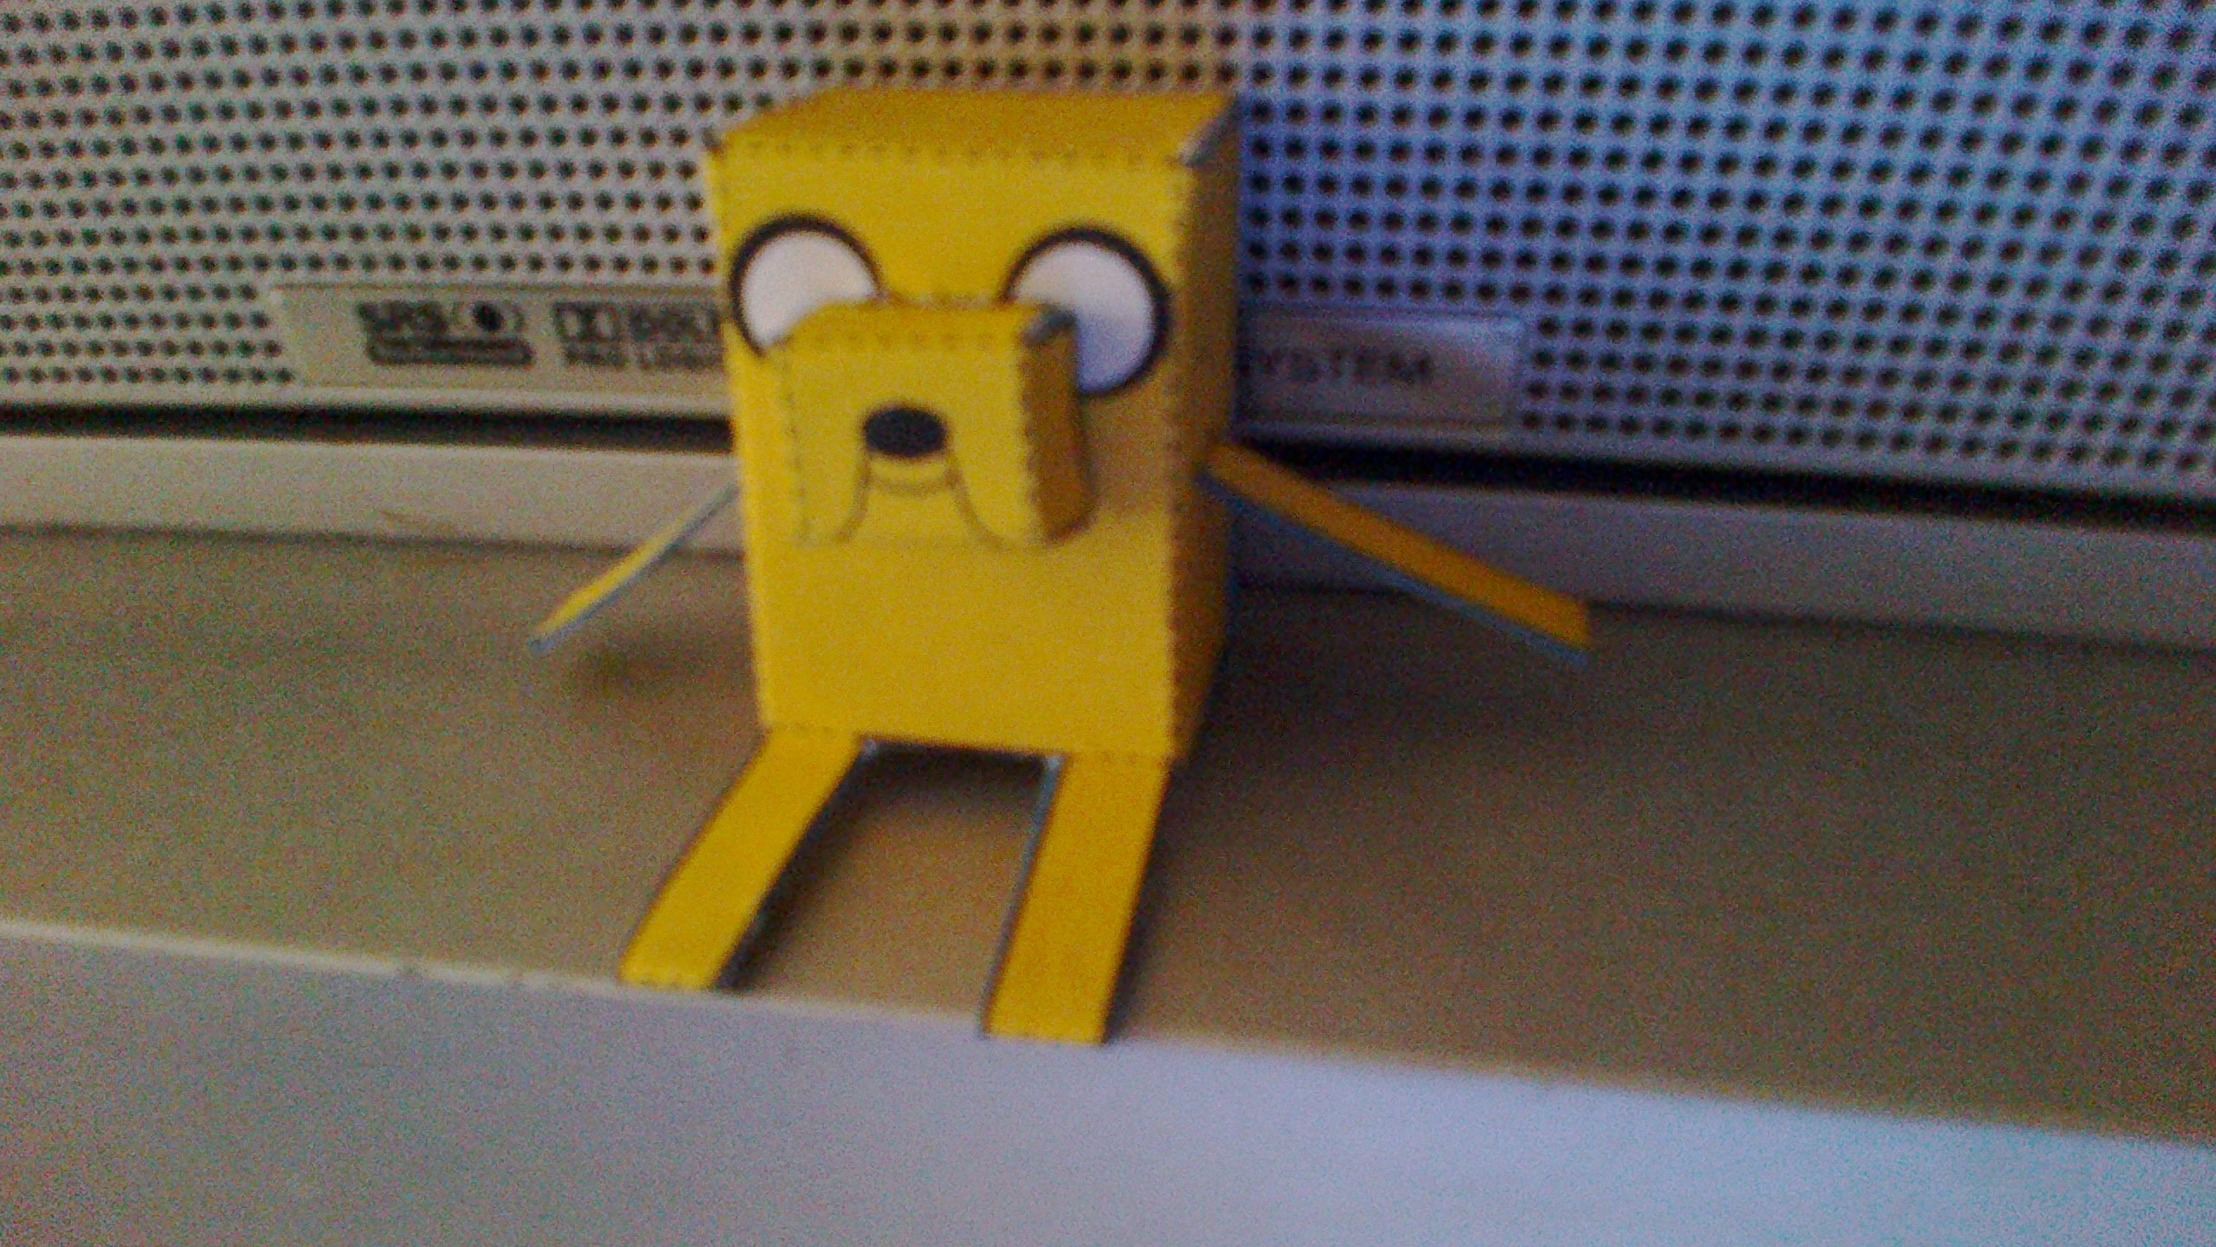 Adventure Time Cutout [PaperToon]